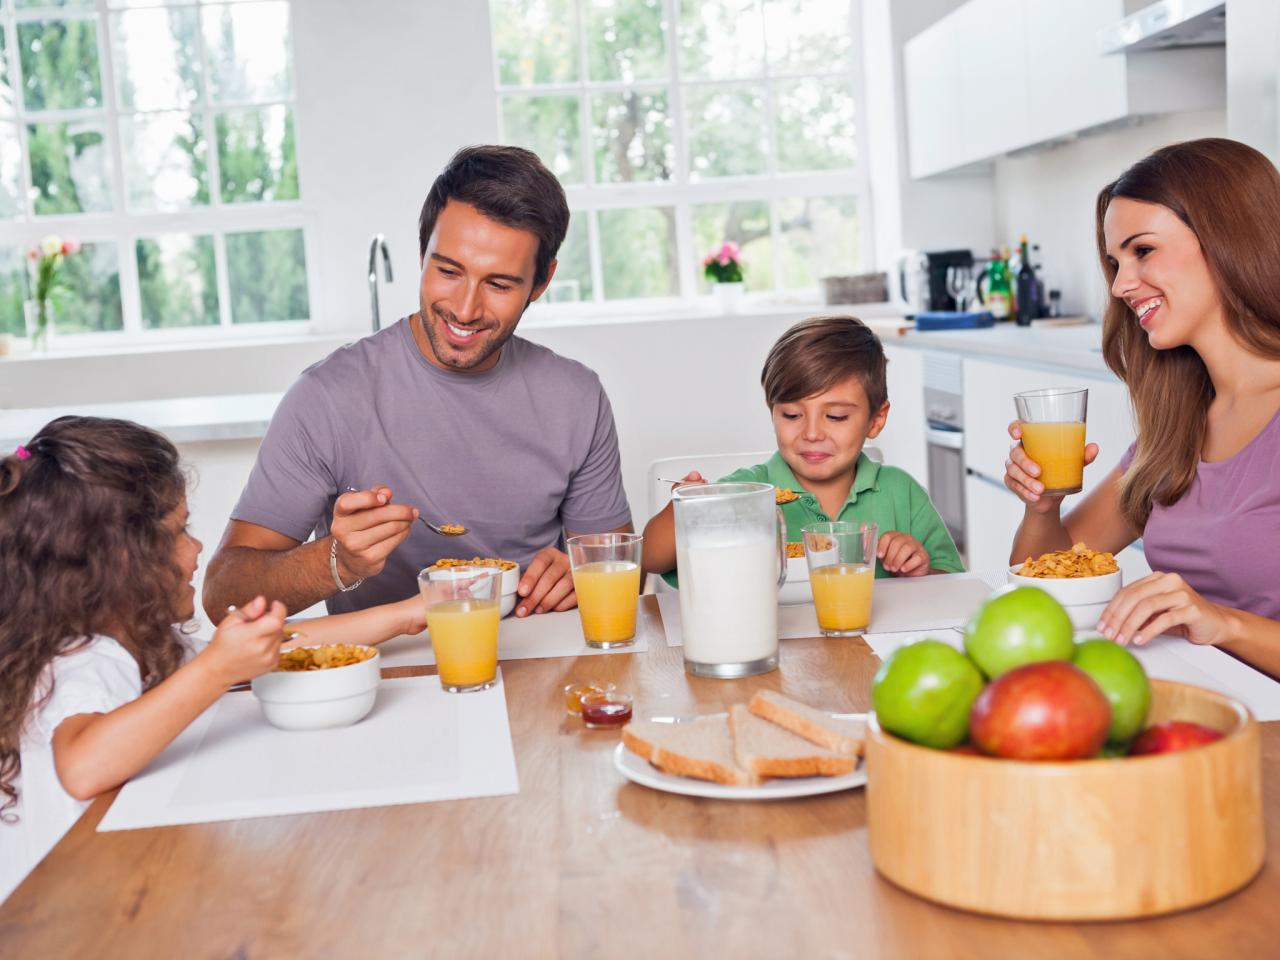 TS-161146814_family-with-small-kids-eat-in-kitchen-breakfast.jpg.rend.hgtvcom.1280.960